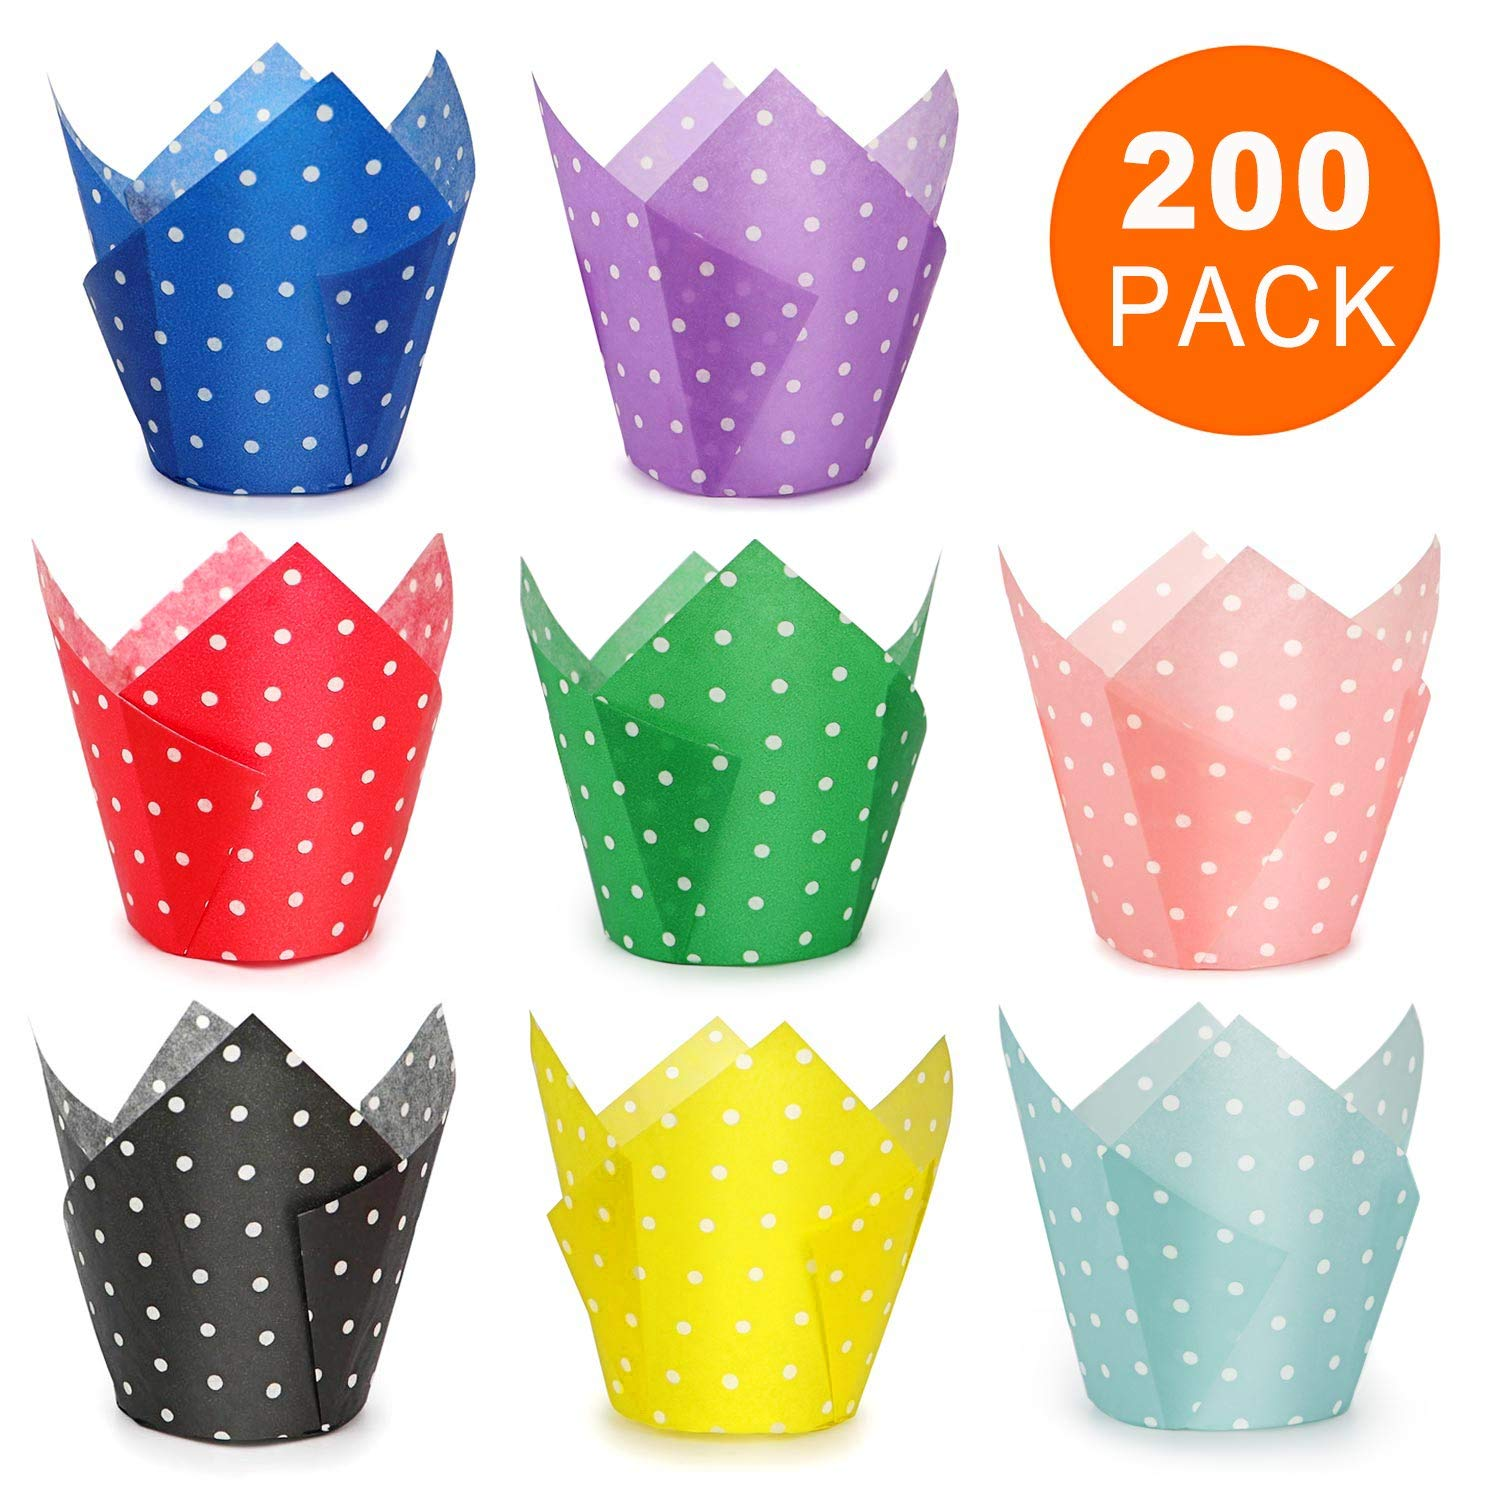 Tulip Cupcake Liners, 200 Pcs 8 Colors Polka Dot Baking Cups, HULISEN Premium Greaseproof Paper, Muffin Liners for Wedding, Baby Showers, Party, Standard Size- Bottom Diameter 2 inch, Gift Package